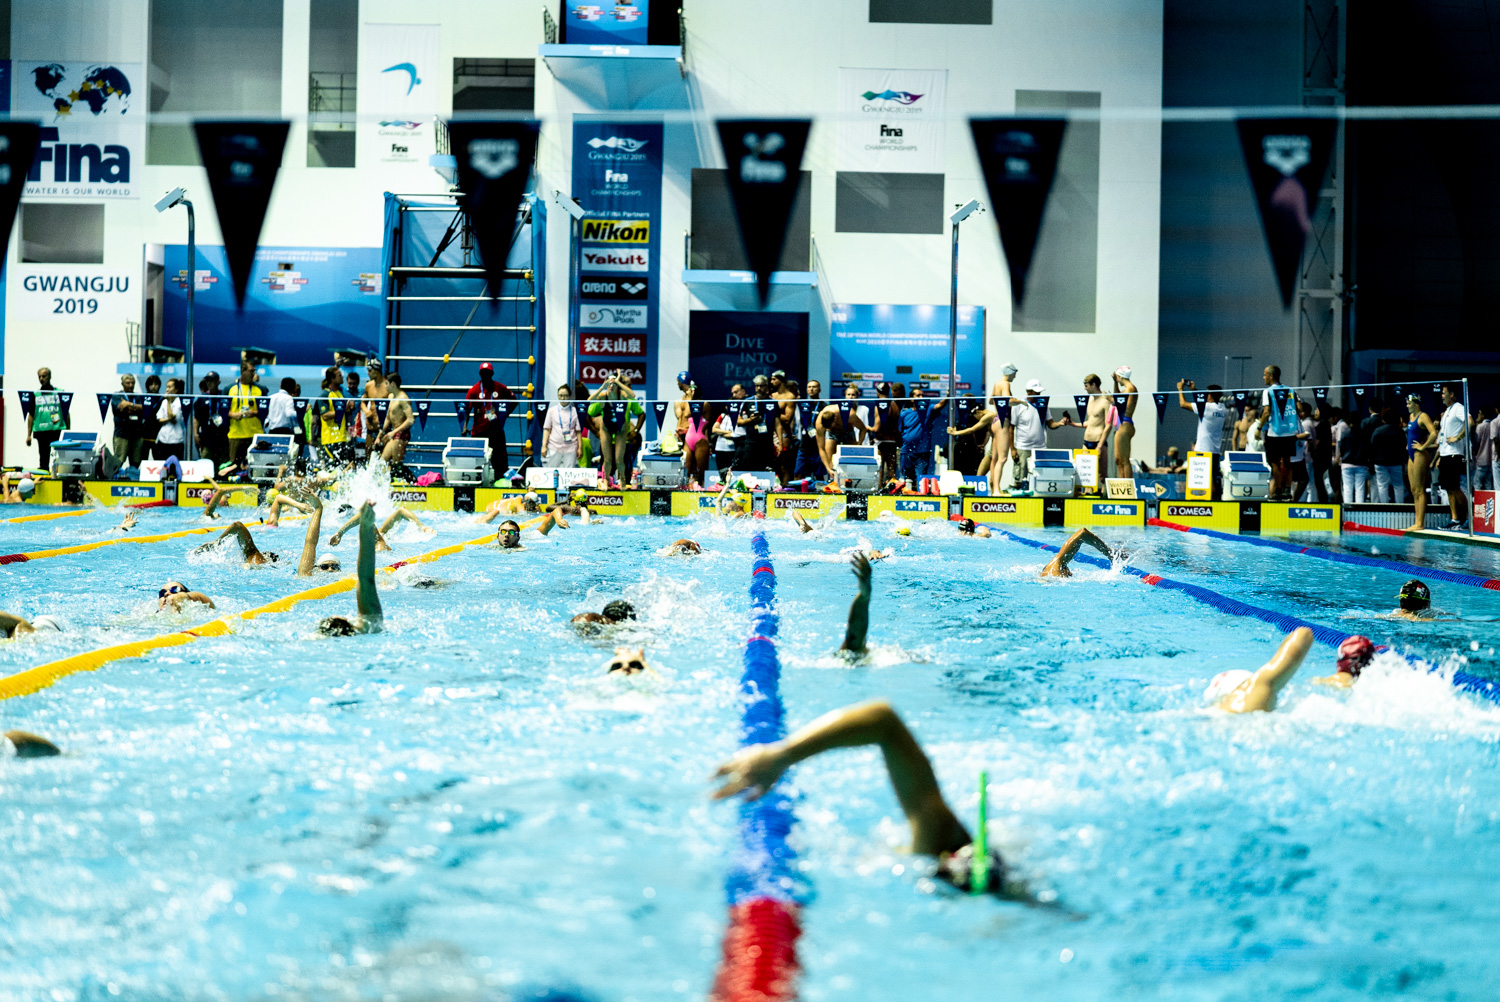 Swimming Australia Aims For Strong First Night at the 2019 FINA World Championships